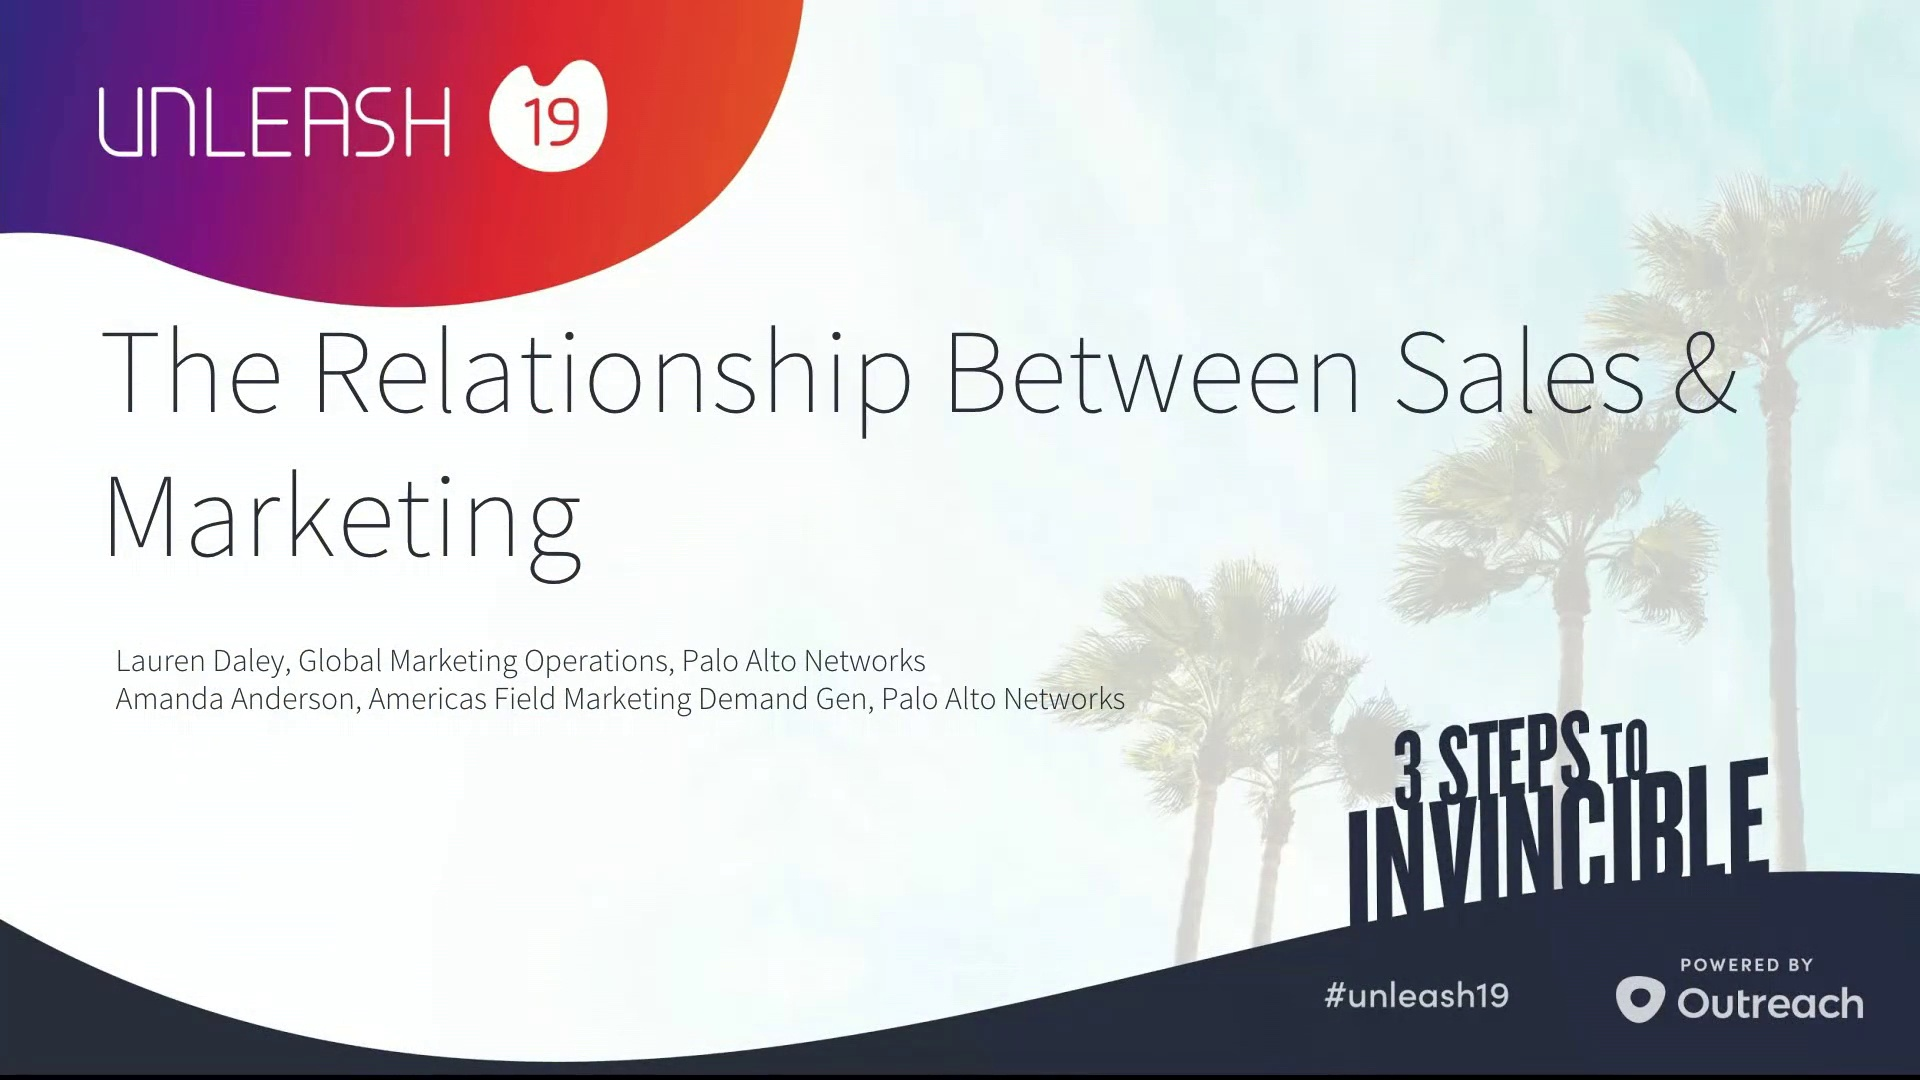 The Relationship Between Sales and Marketing - Lauren Daley, Amanda Anderson